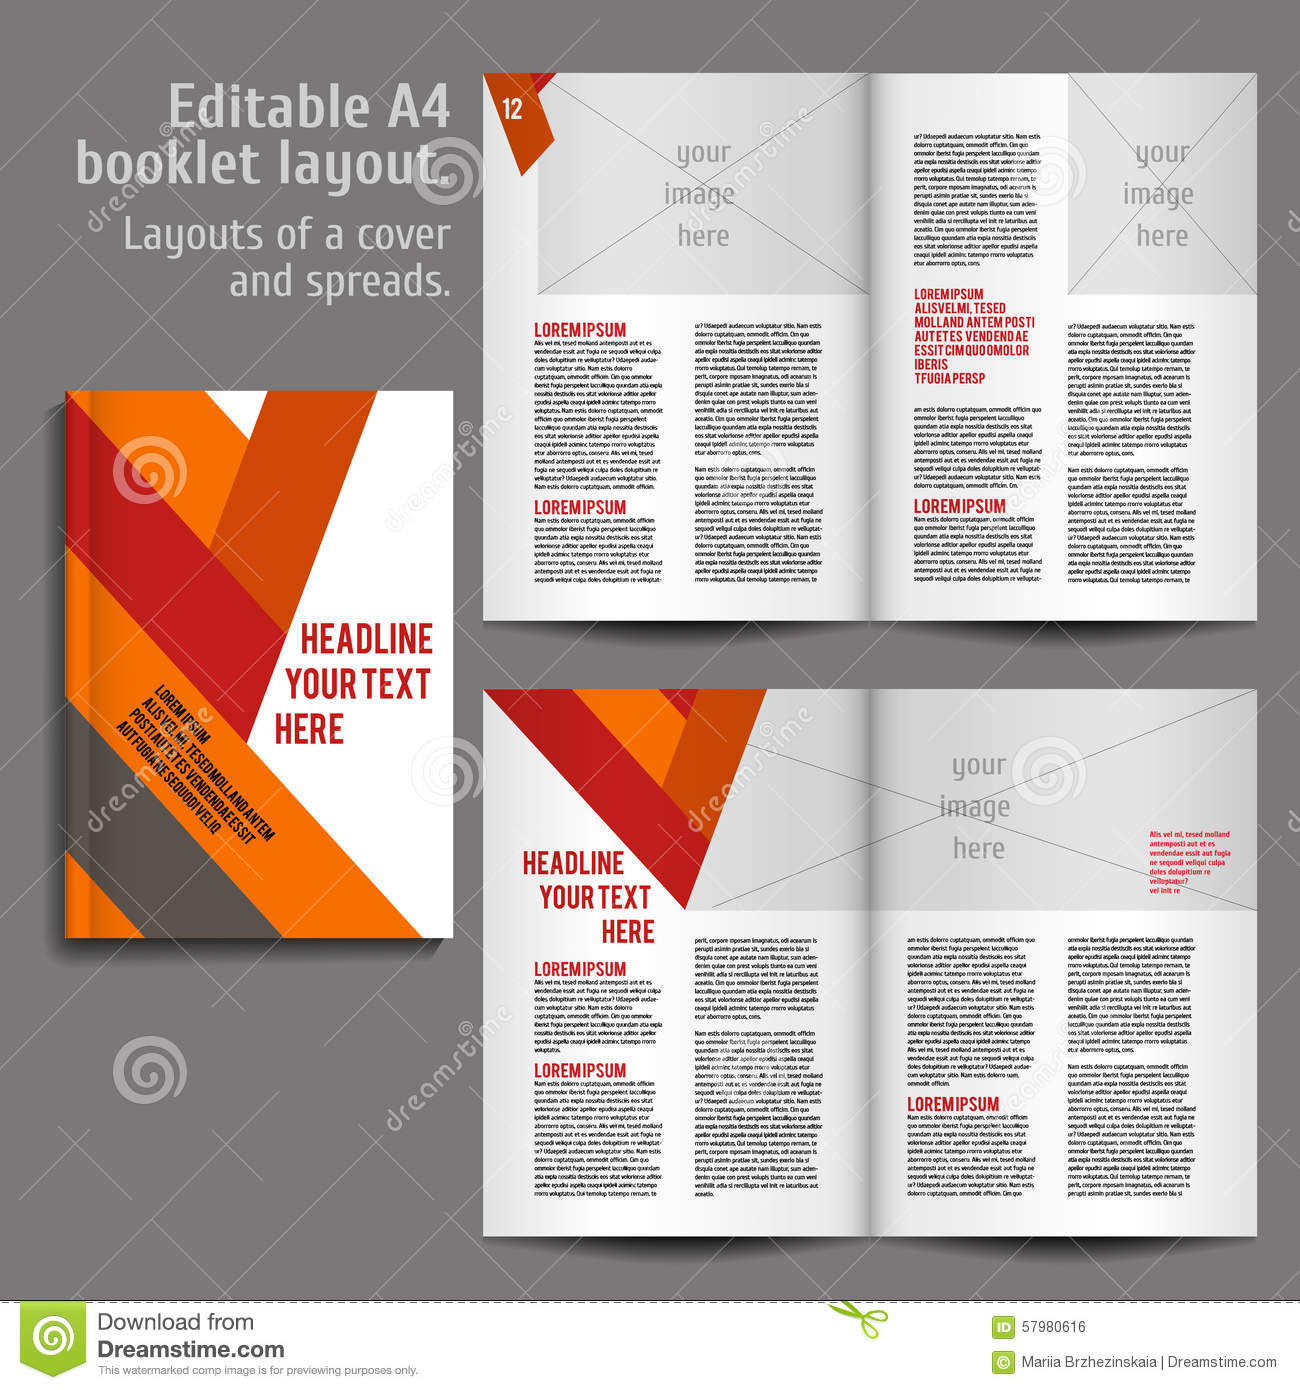 Book Cover Layouts : A book layout design template stock vector illustration